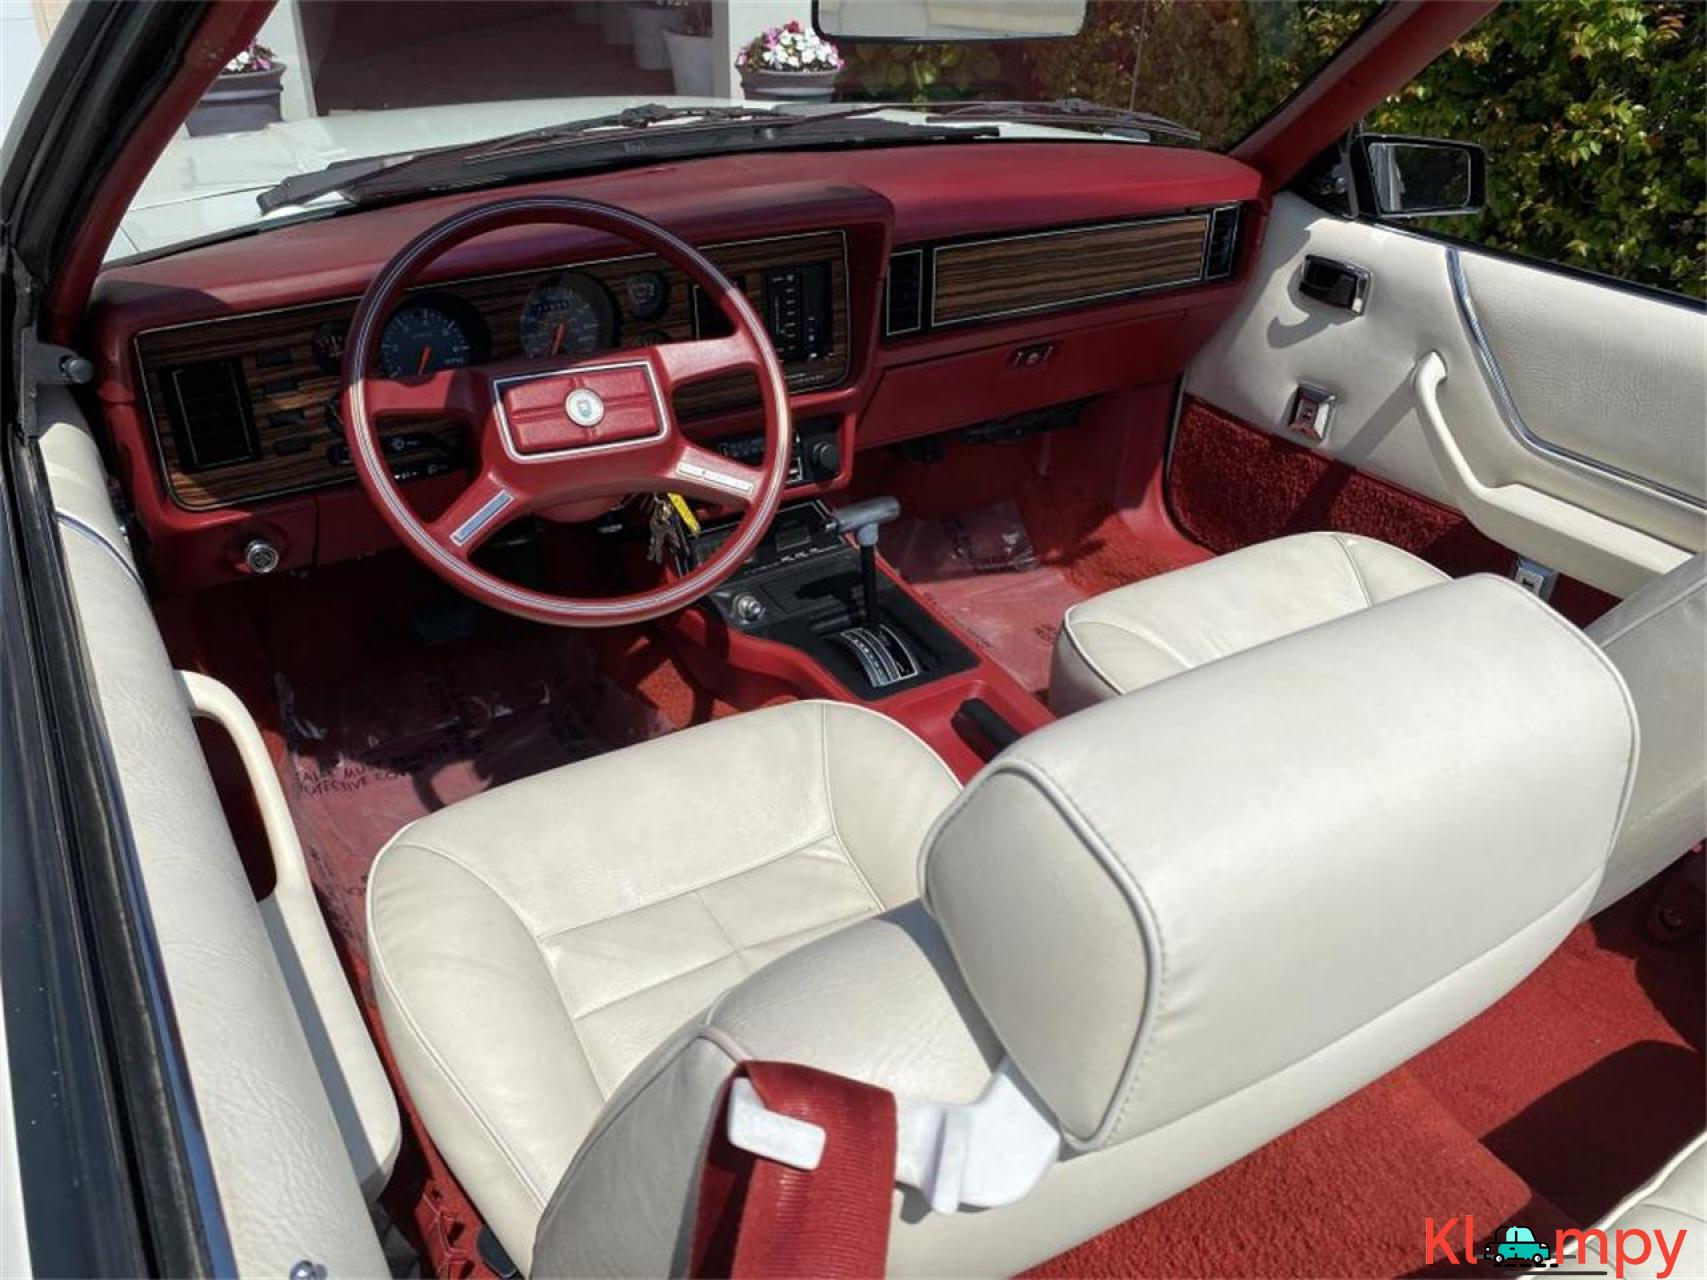 1983 Ford Mustang 3.8 LITRE V6 AUTO - 18/20